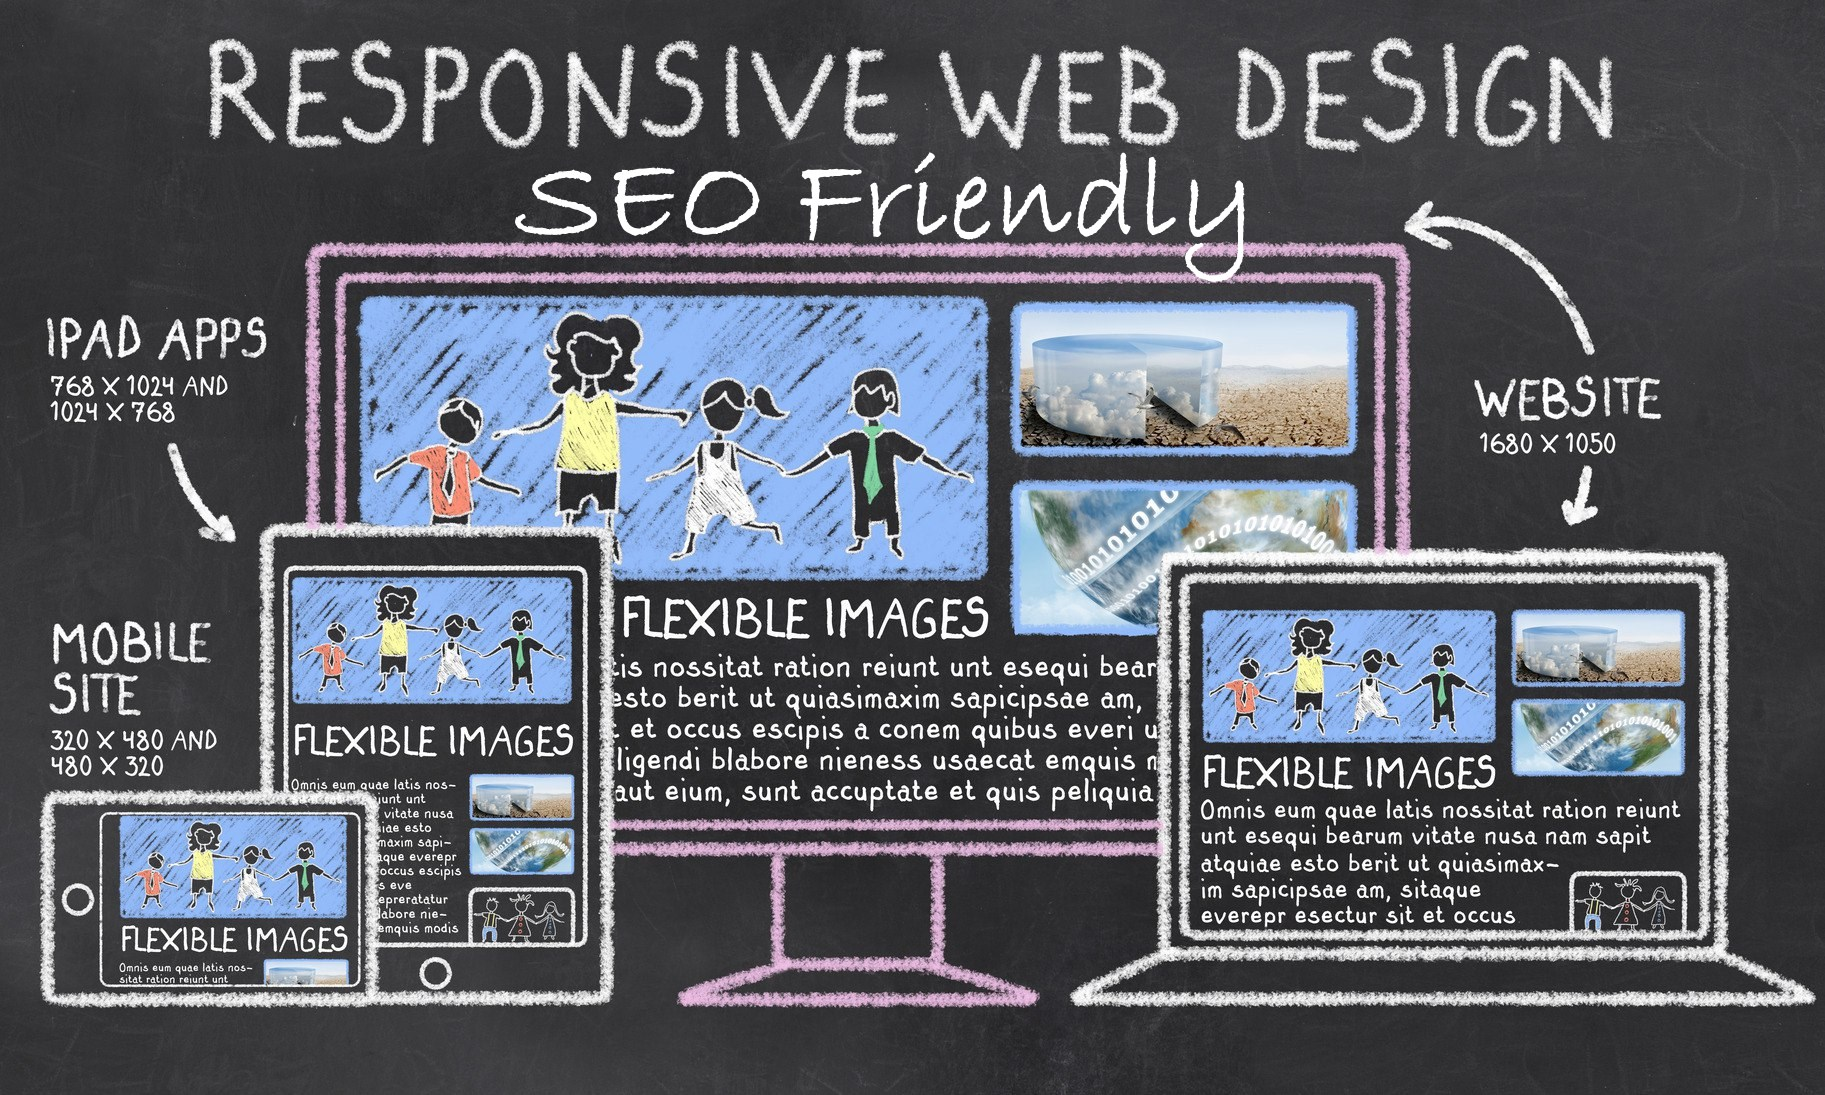 debello website design seo friendly